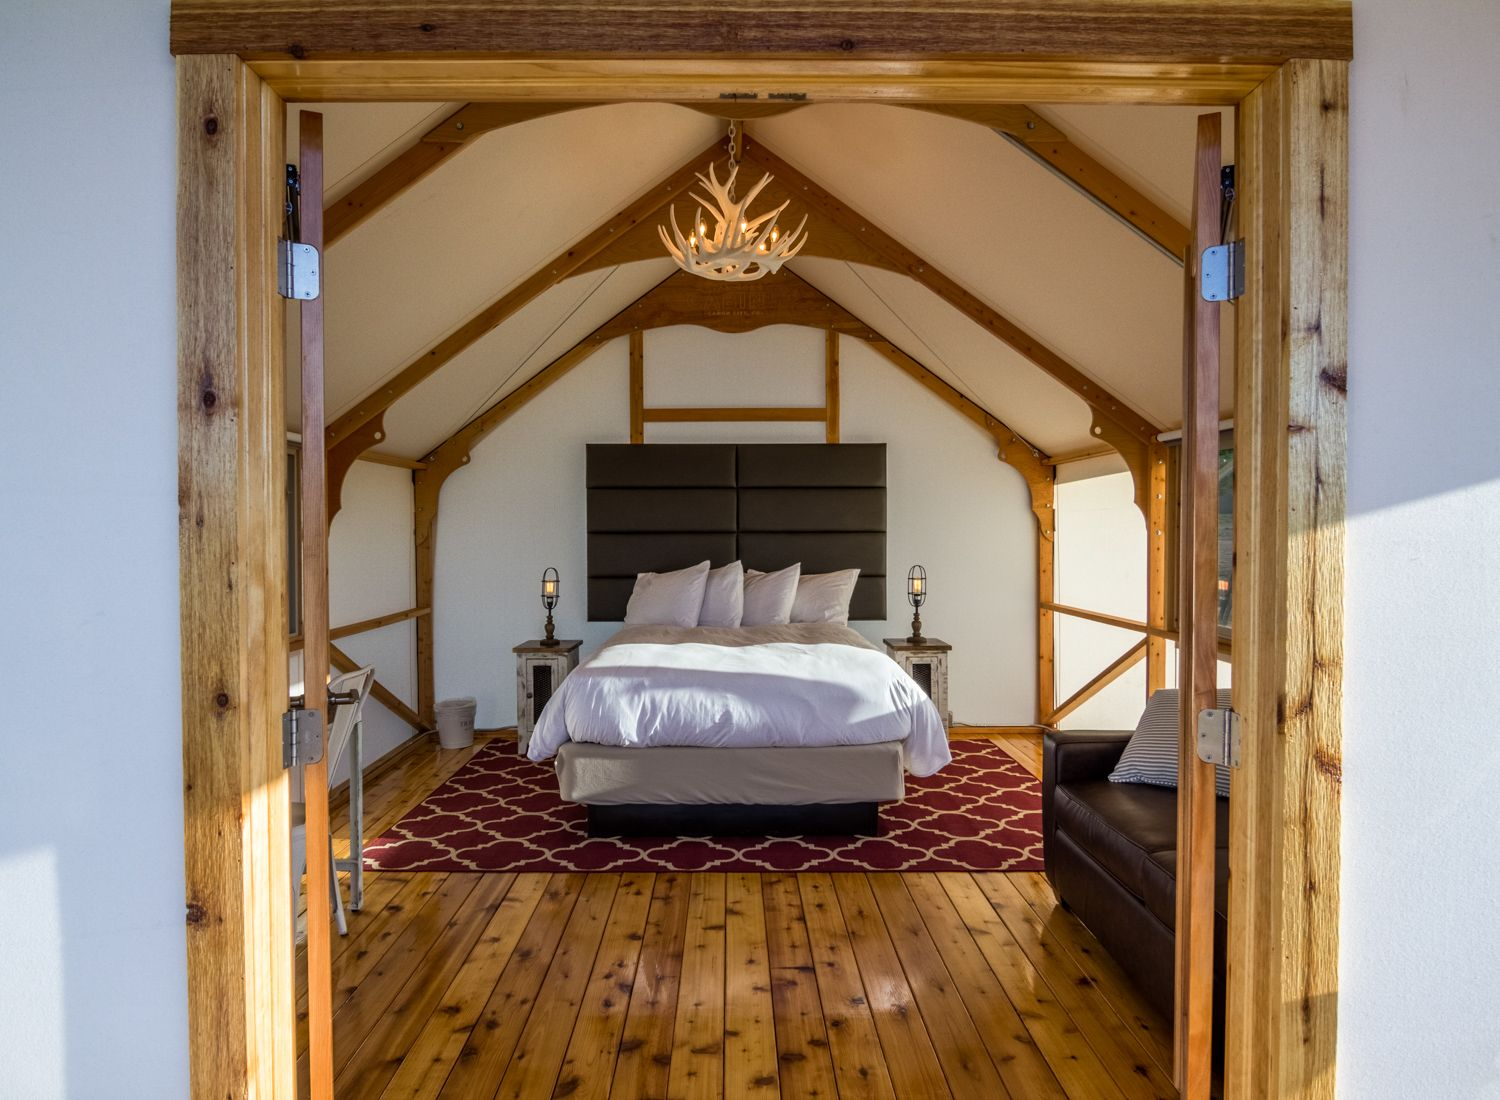 10 Best Glamping Resorts in Colorado for Epic Outdoor